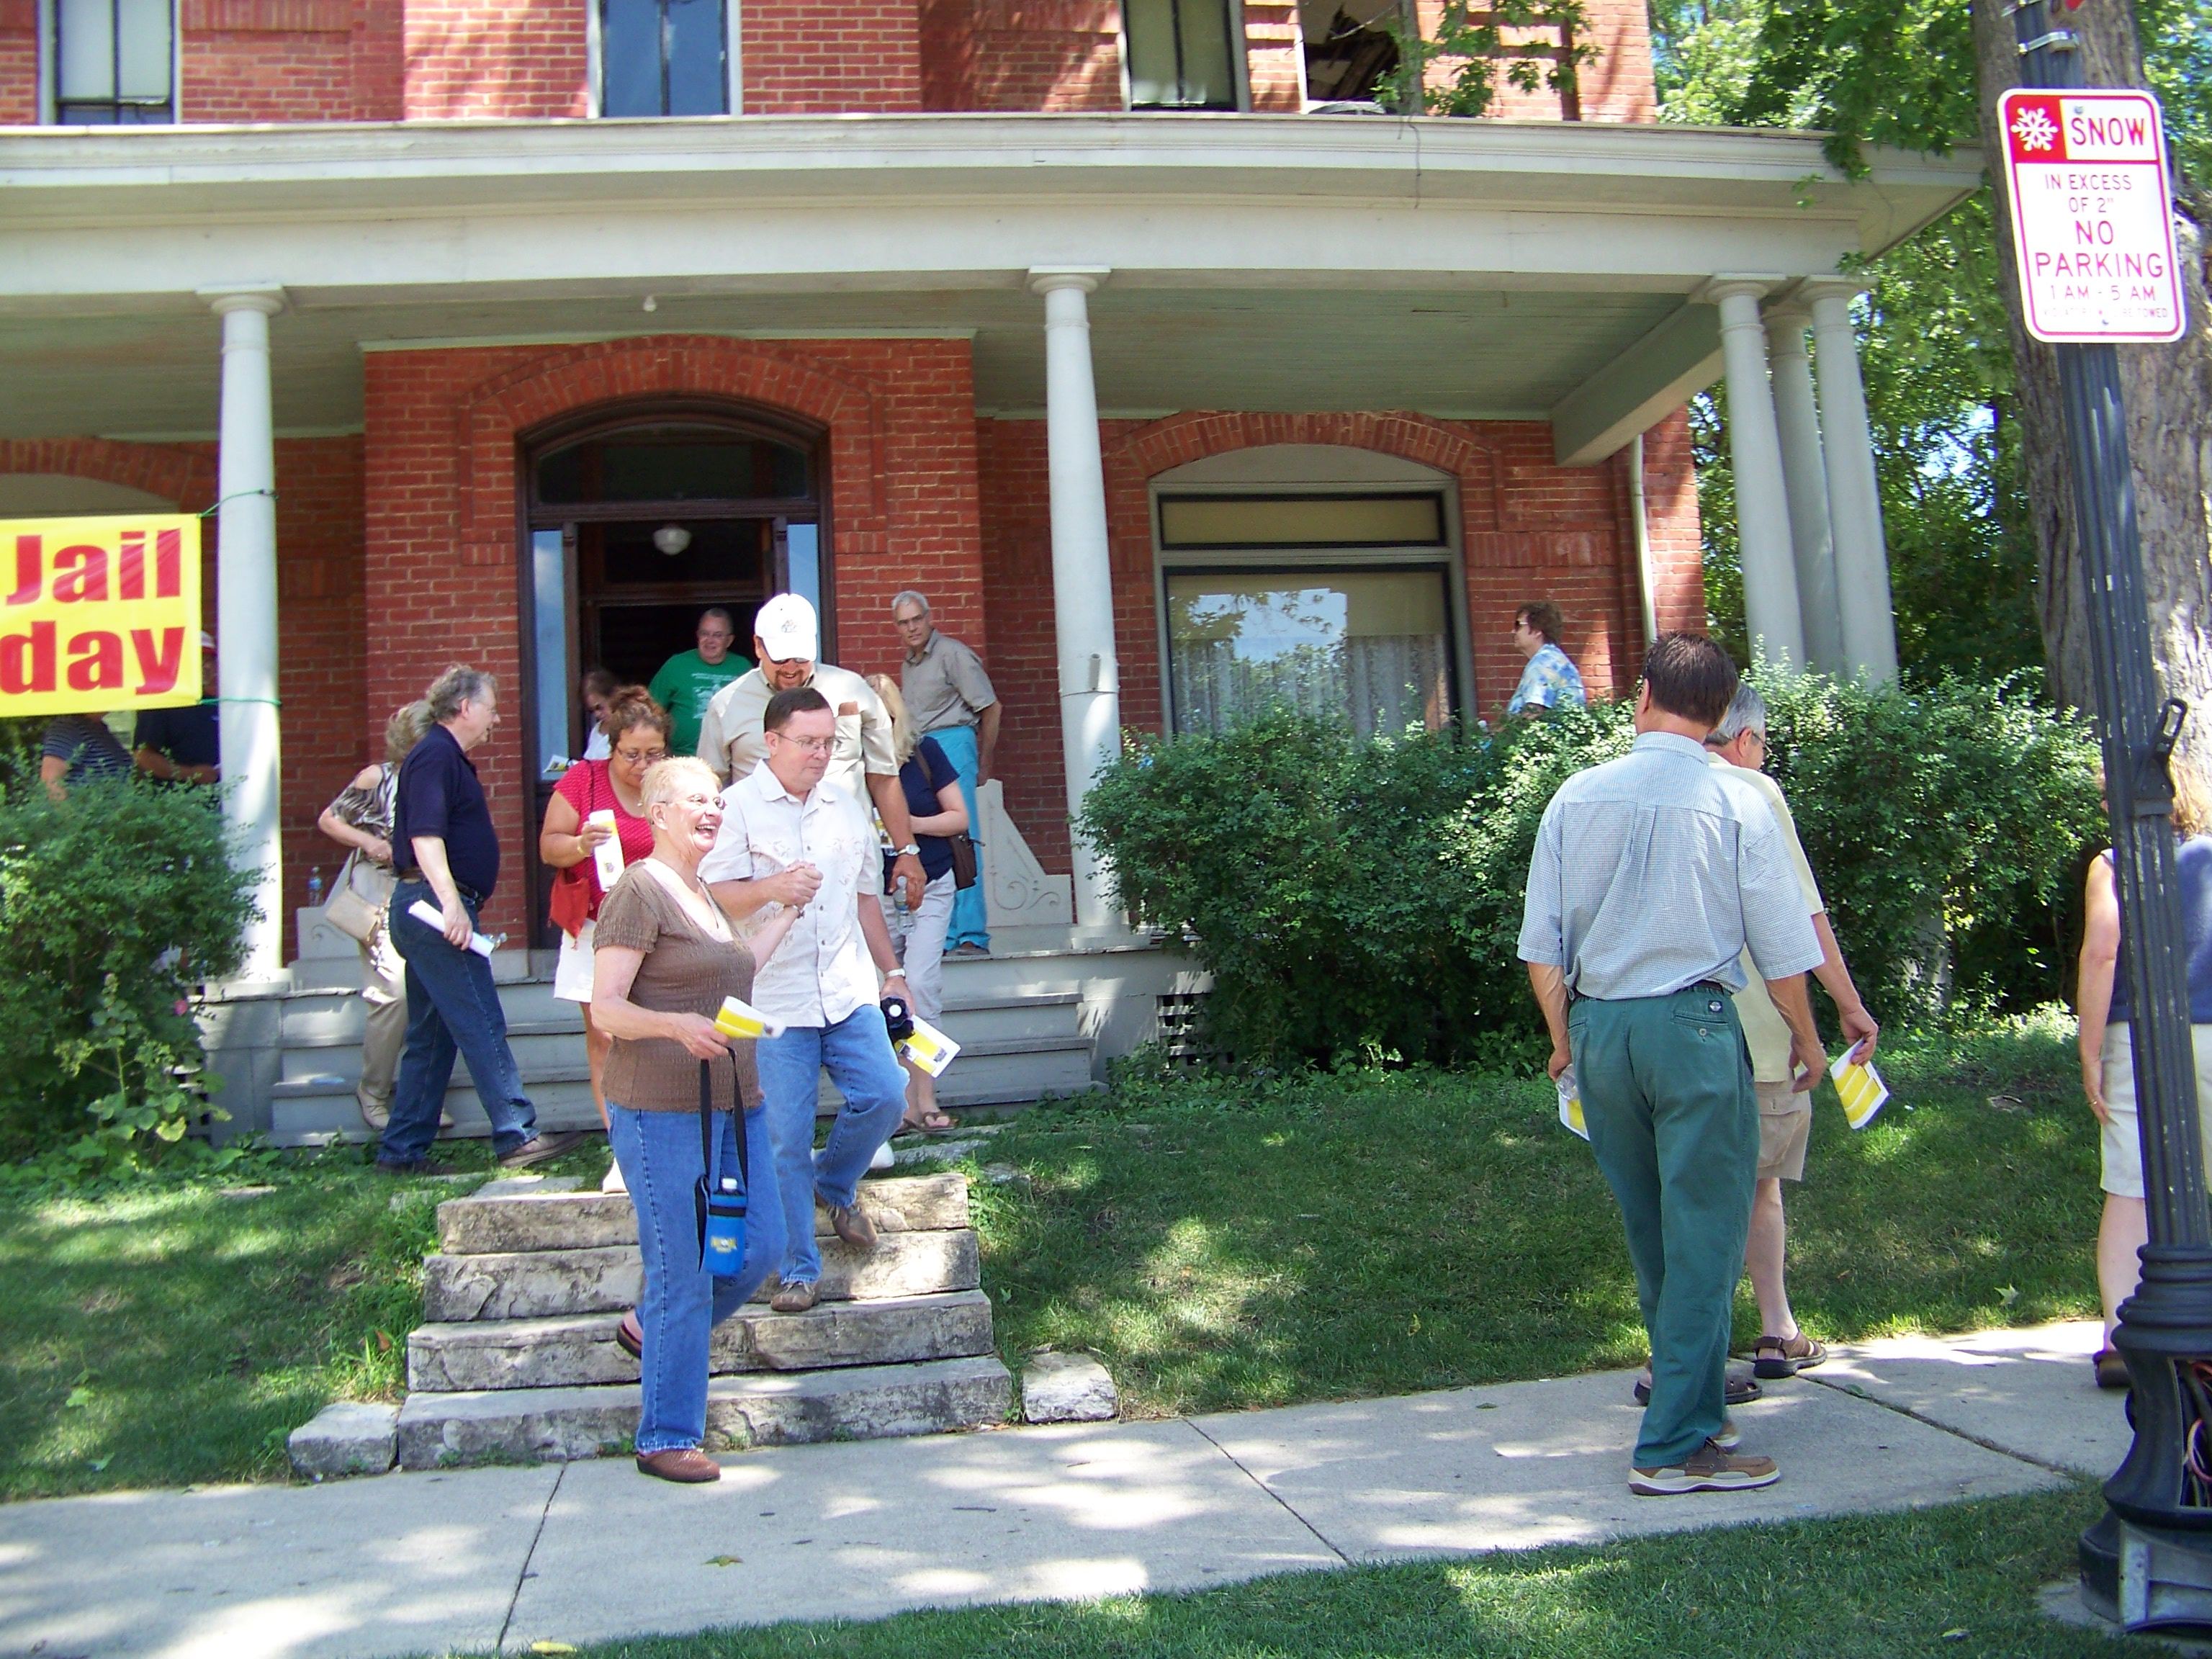 Participants enjoying a tour of the Old Sheriff's House and Jail (1882) in Crown Point, Indiana